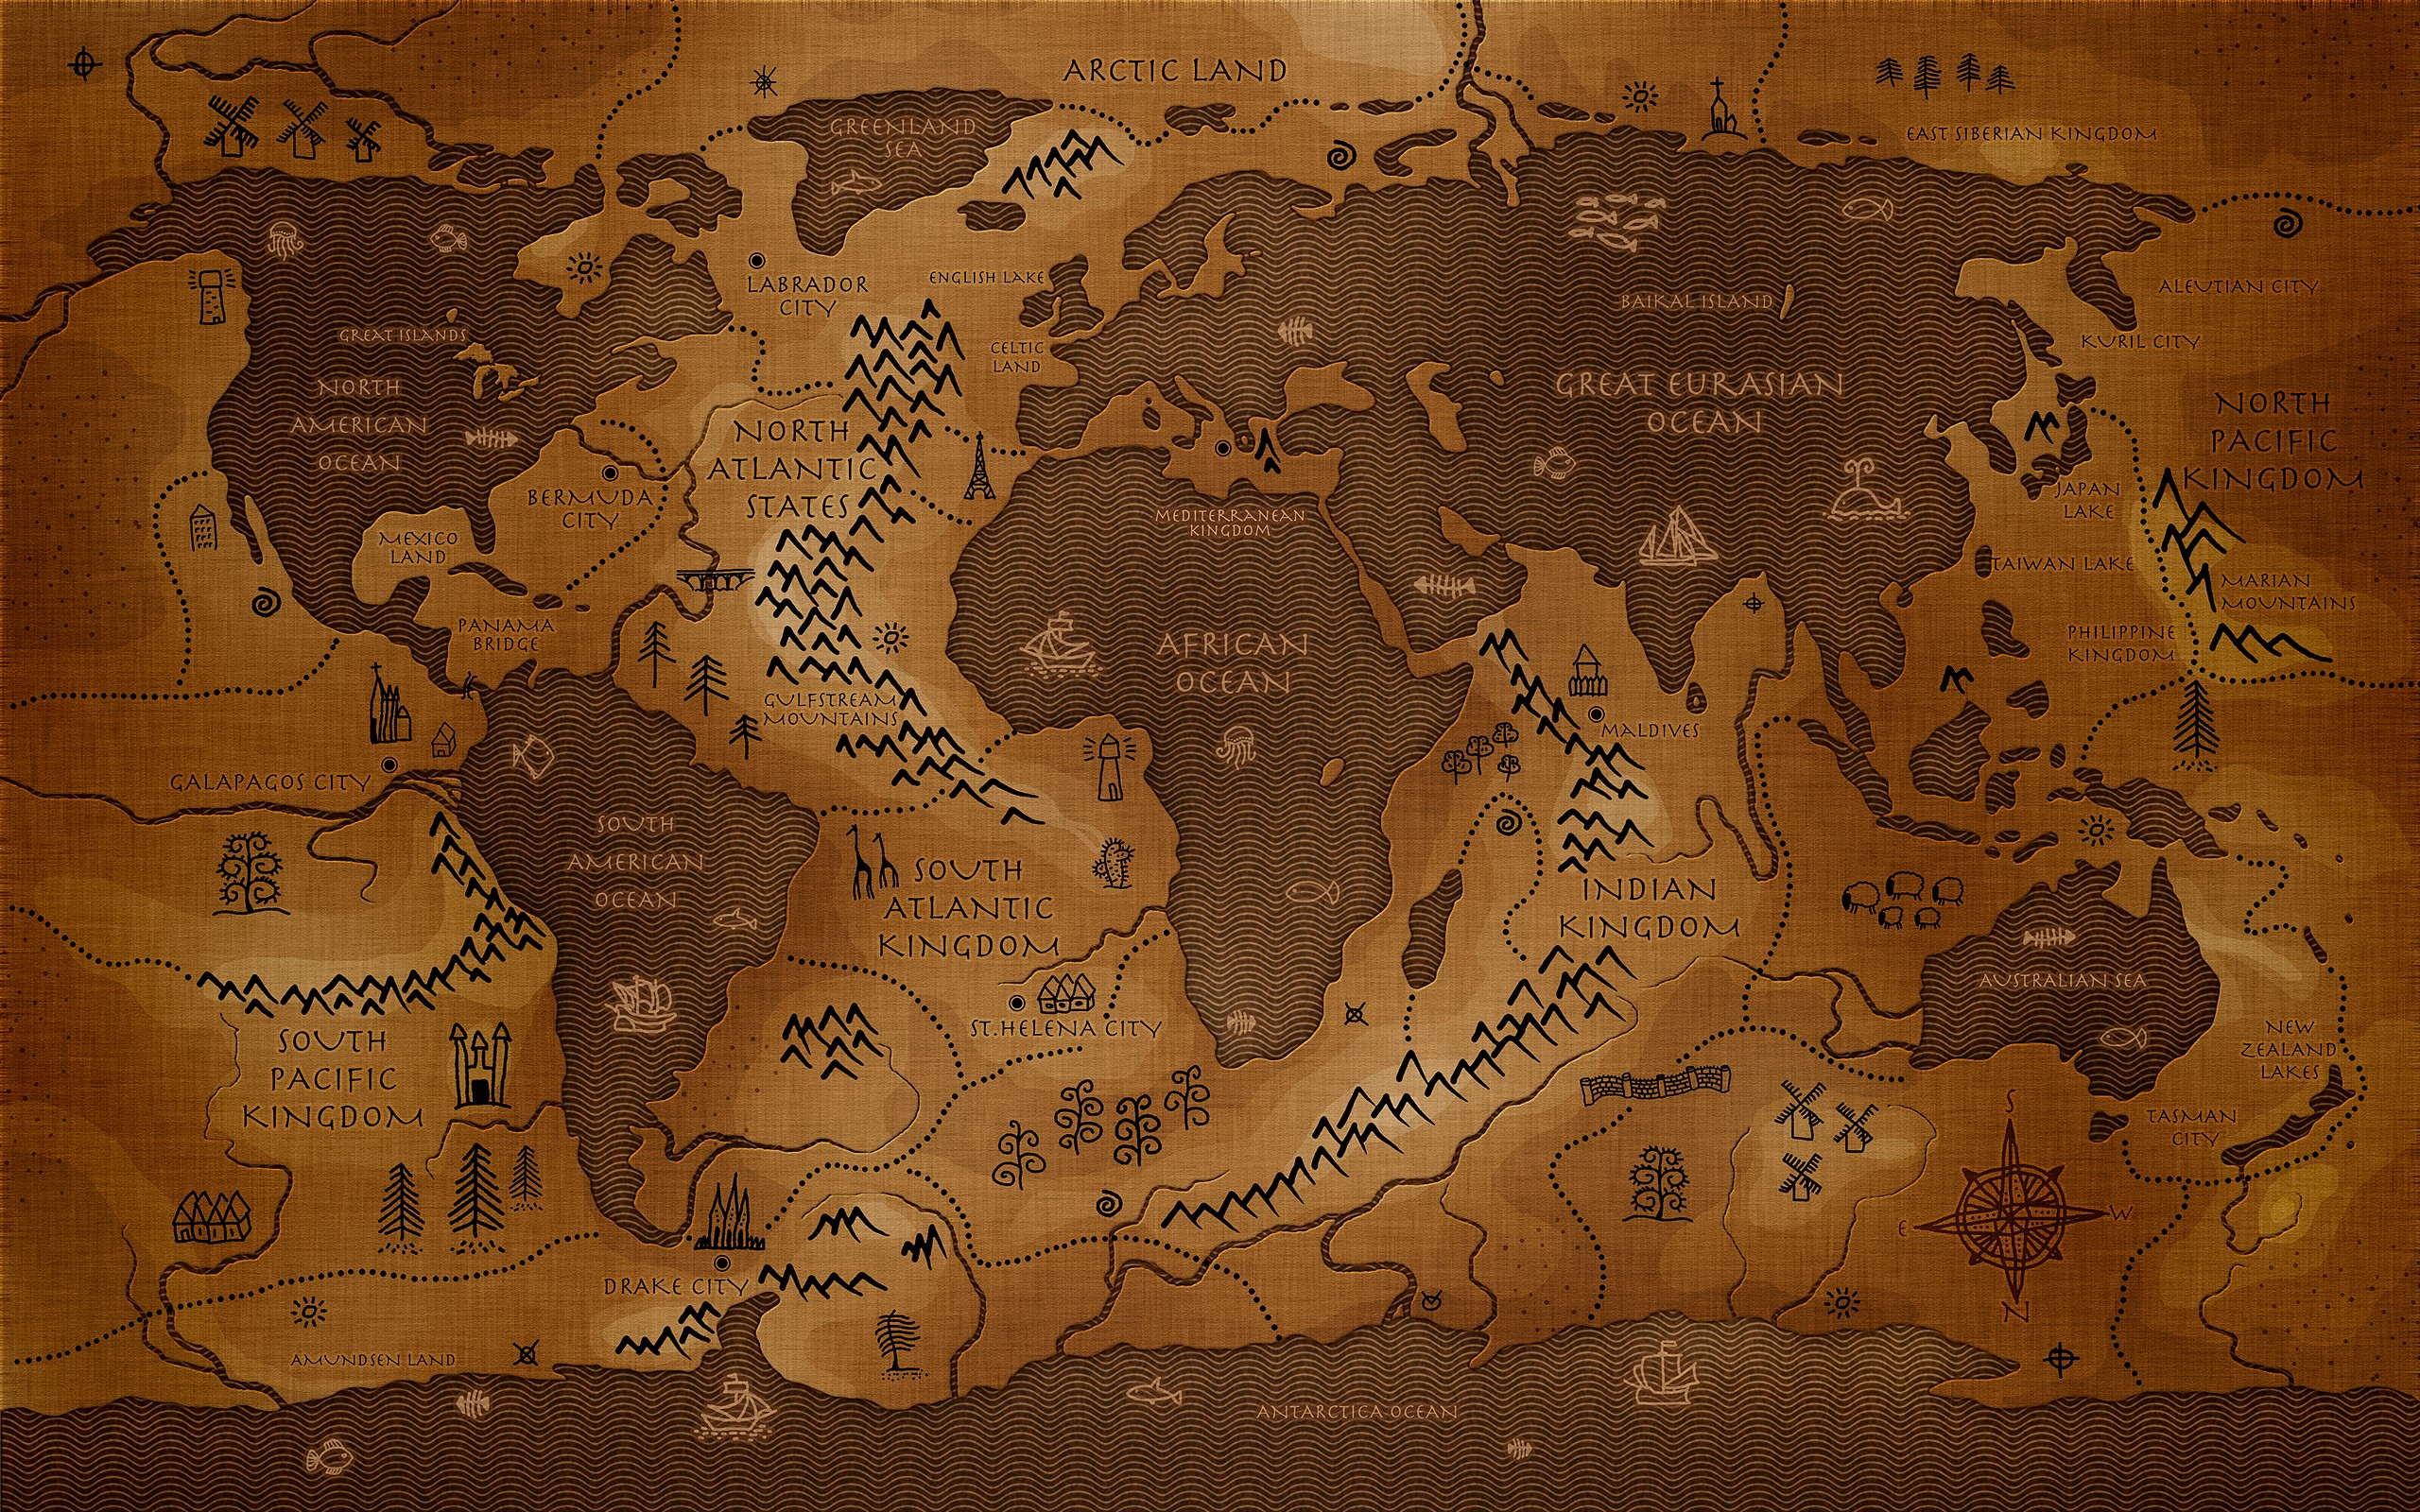 World map background download free stunning high resolution 3840x2160 wallpaper world gumiabroncs Image collections